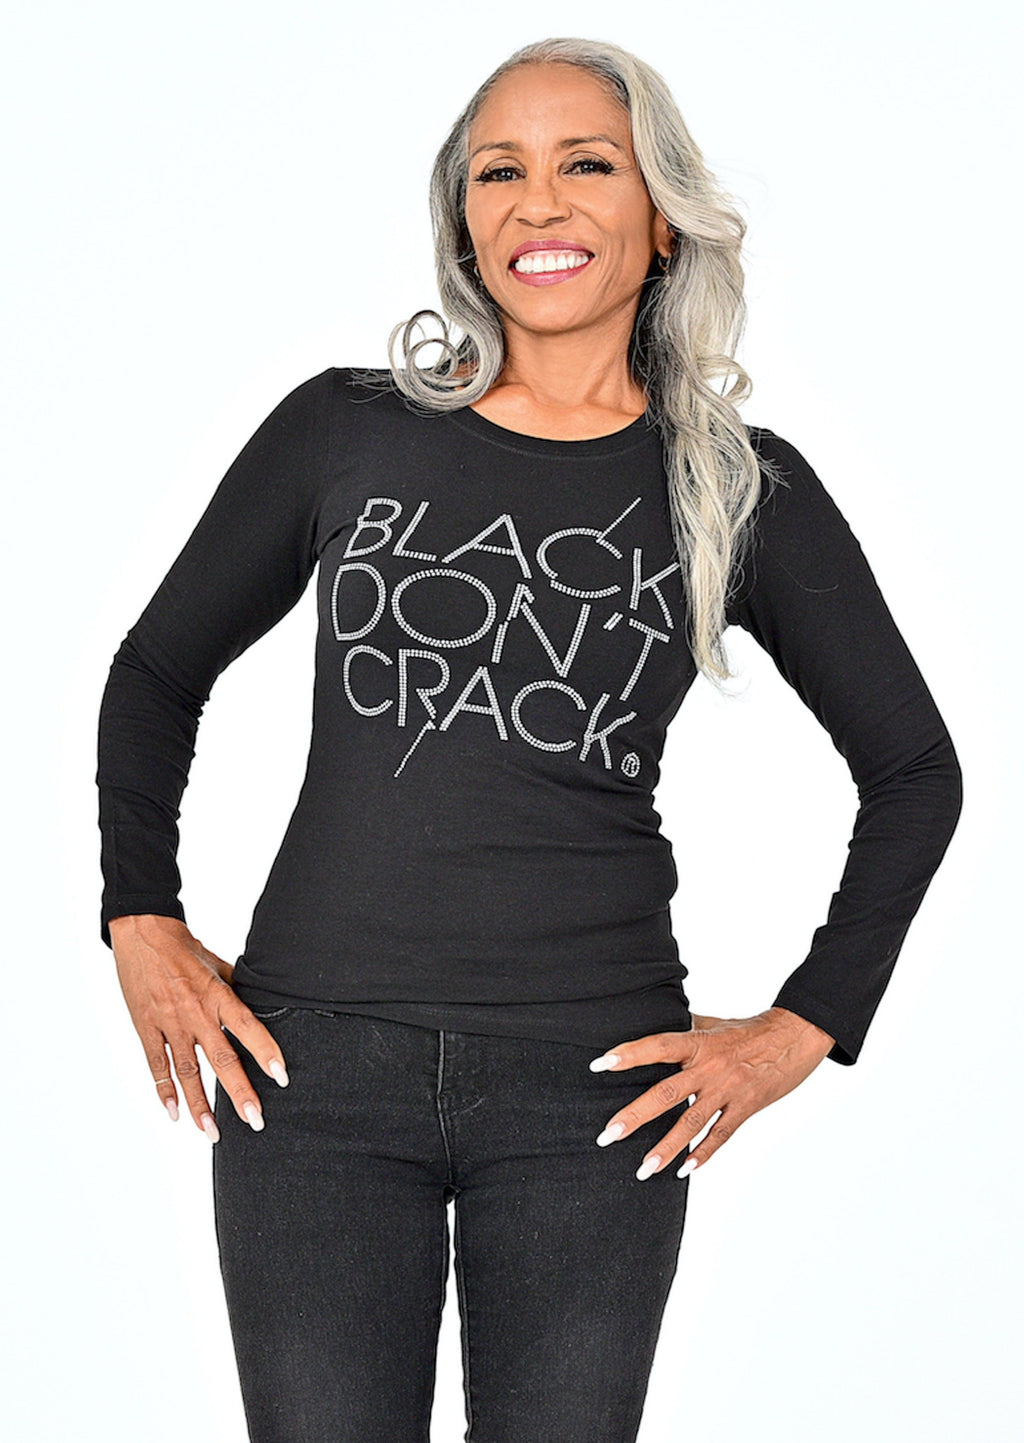 Black Don't Crack Ladies Bling Long Sleeve Black Crew-Neck T-Shirt